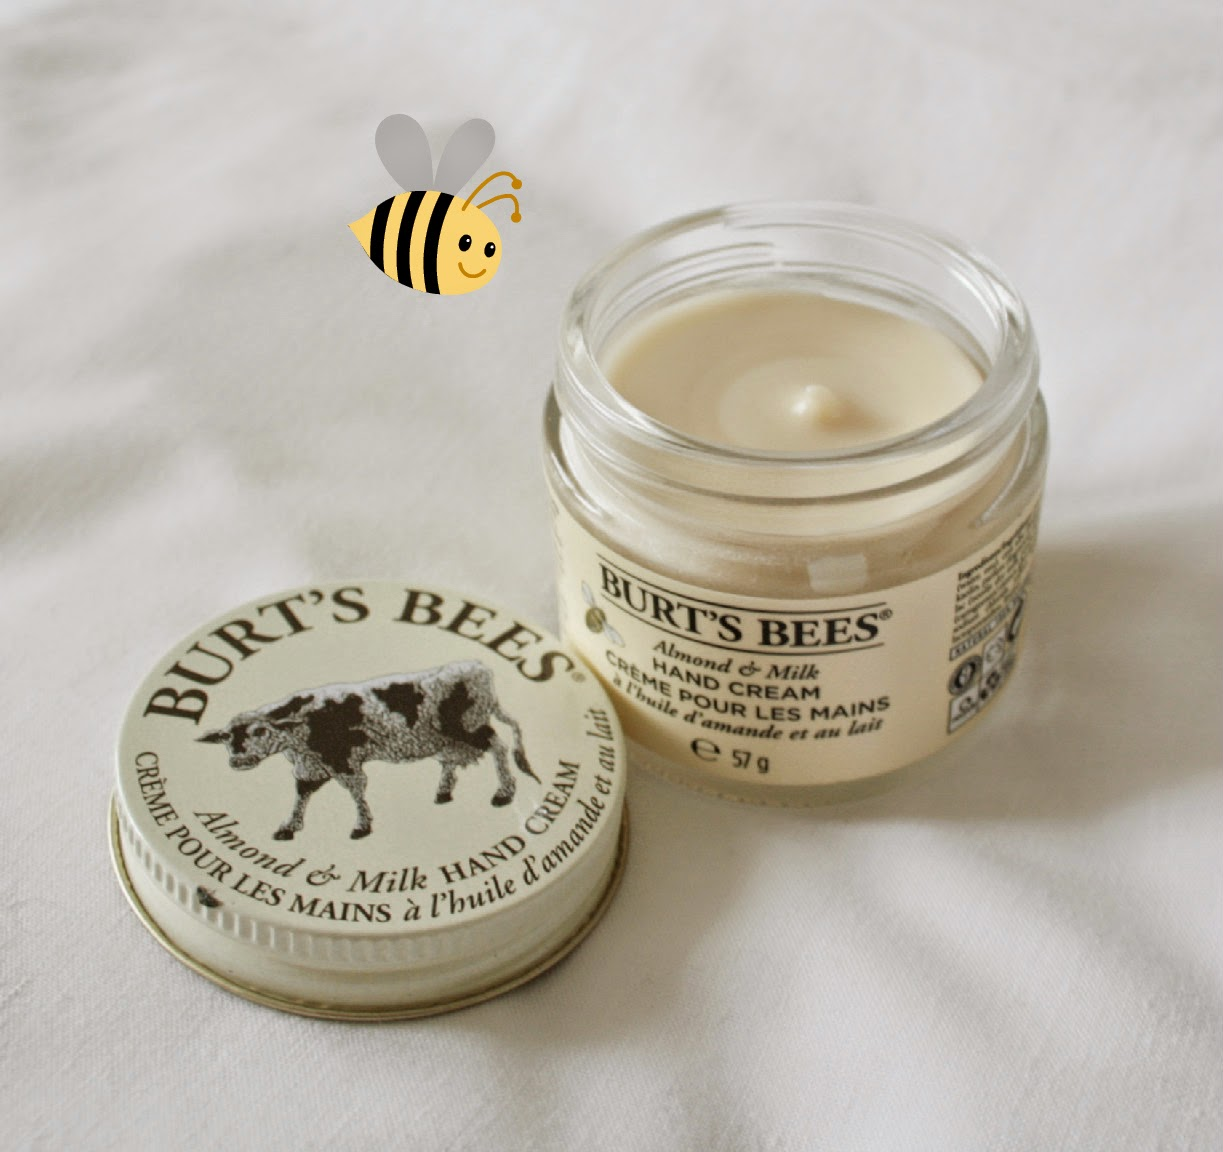 A little goes a long way - Burt's Bees Almond Milk hand cream smells of marzipan and is so moisturising!